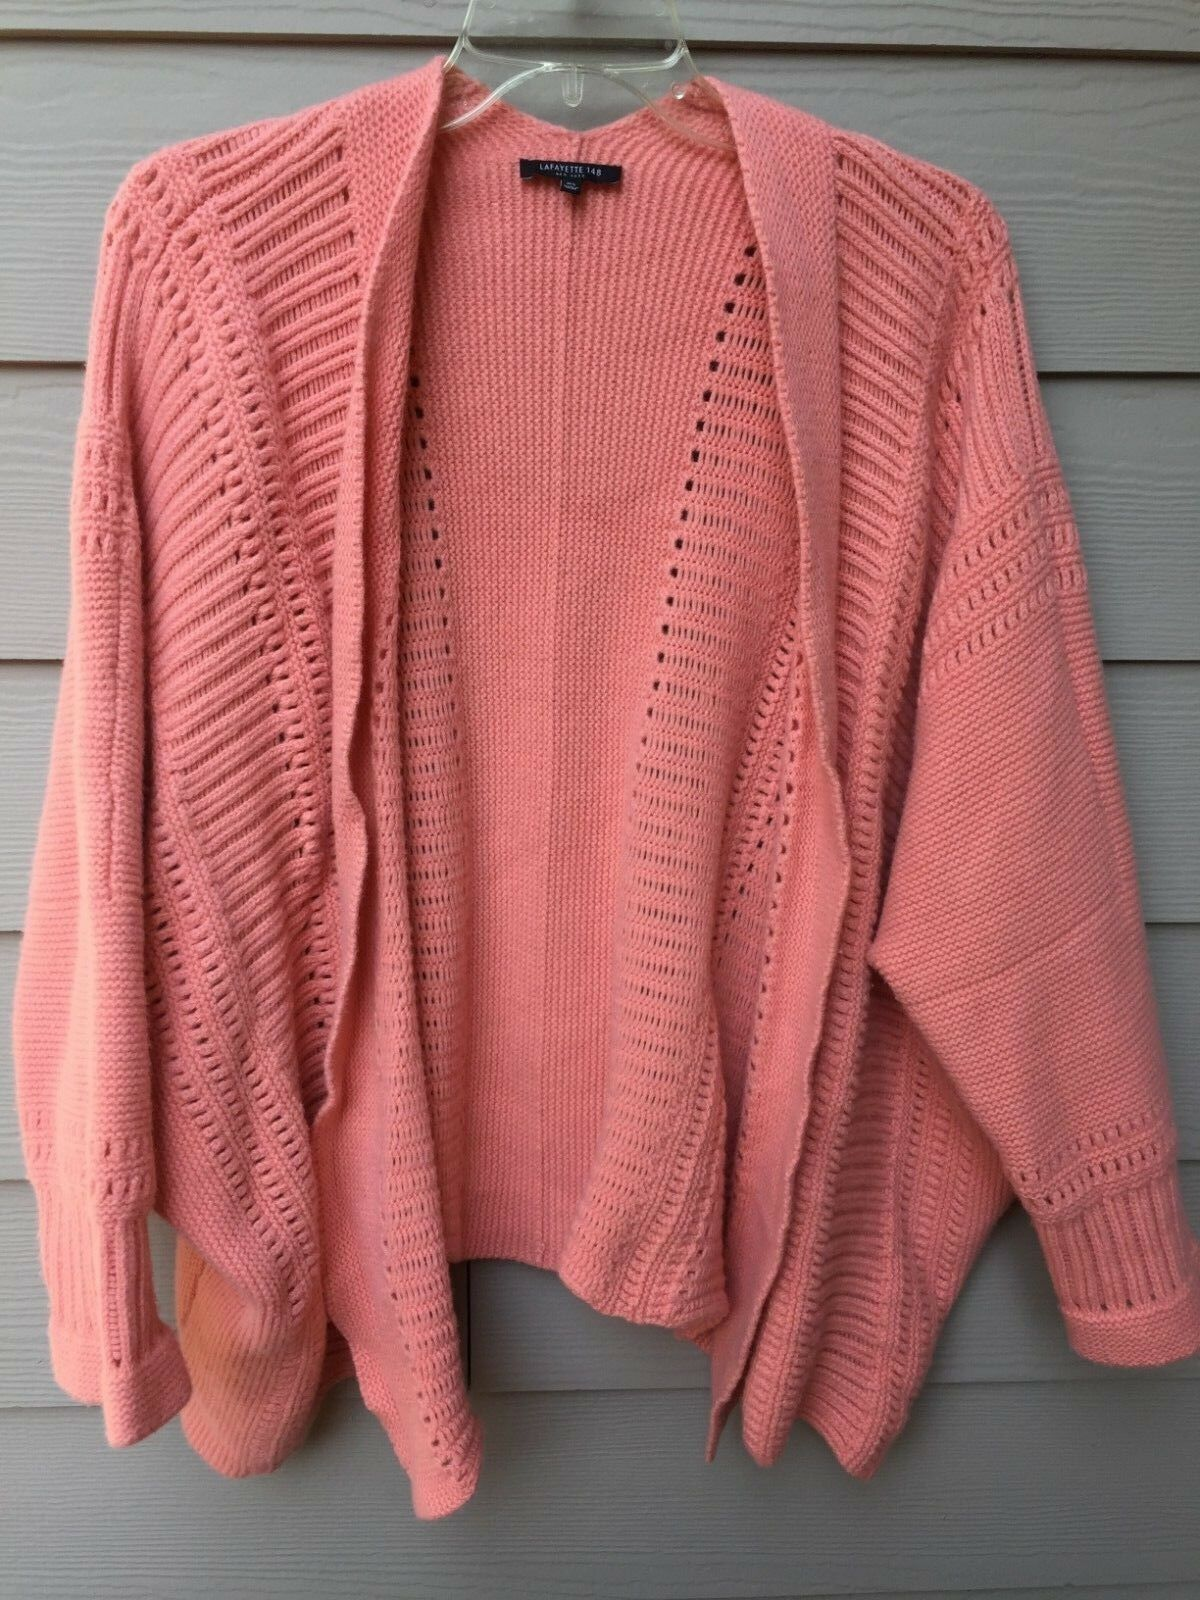 LAFAYETTE 148 Chunky Knit Open Long Cardigan Coral Pink Size M  L Wool Cashmere